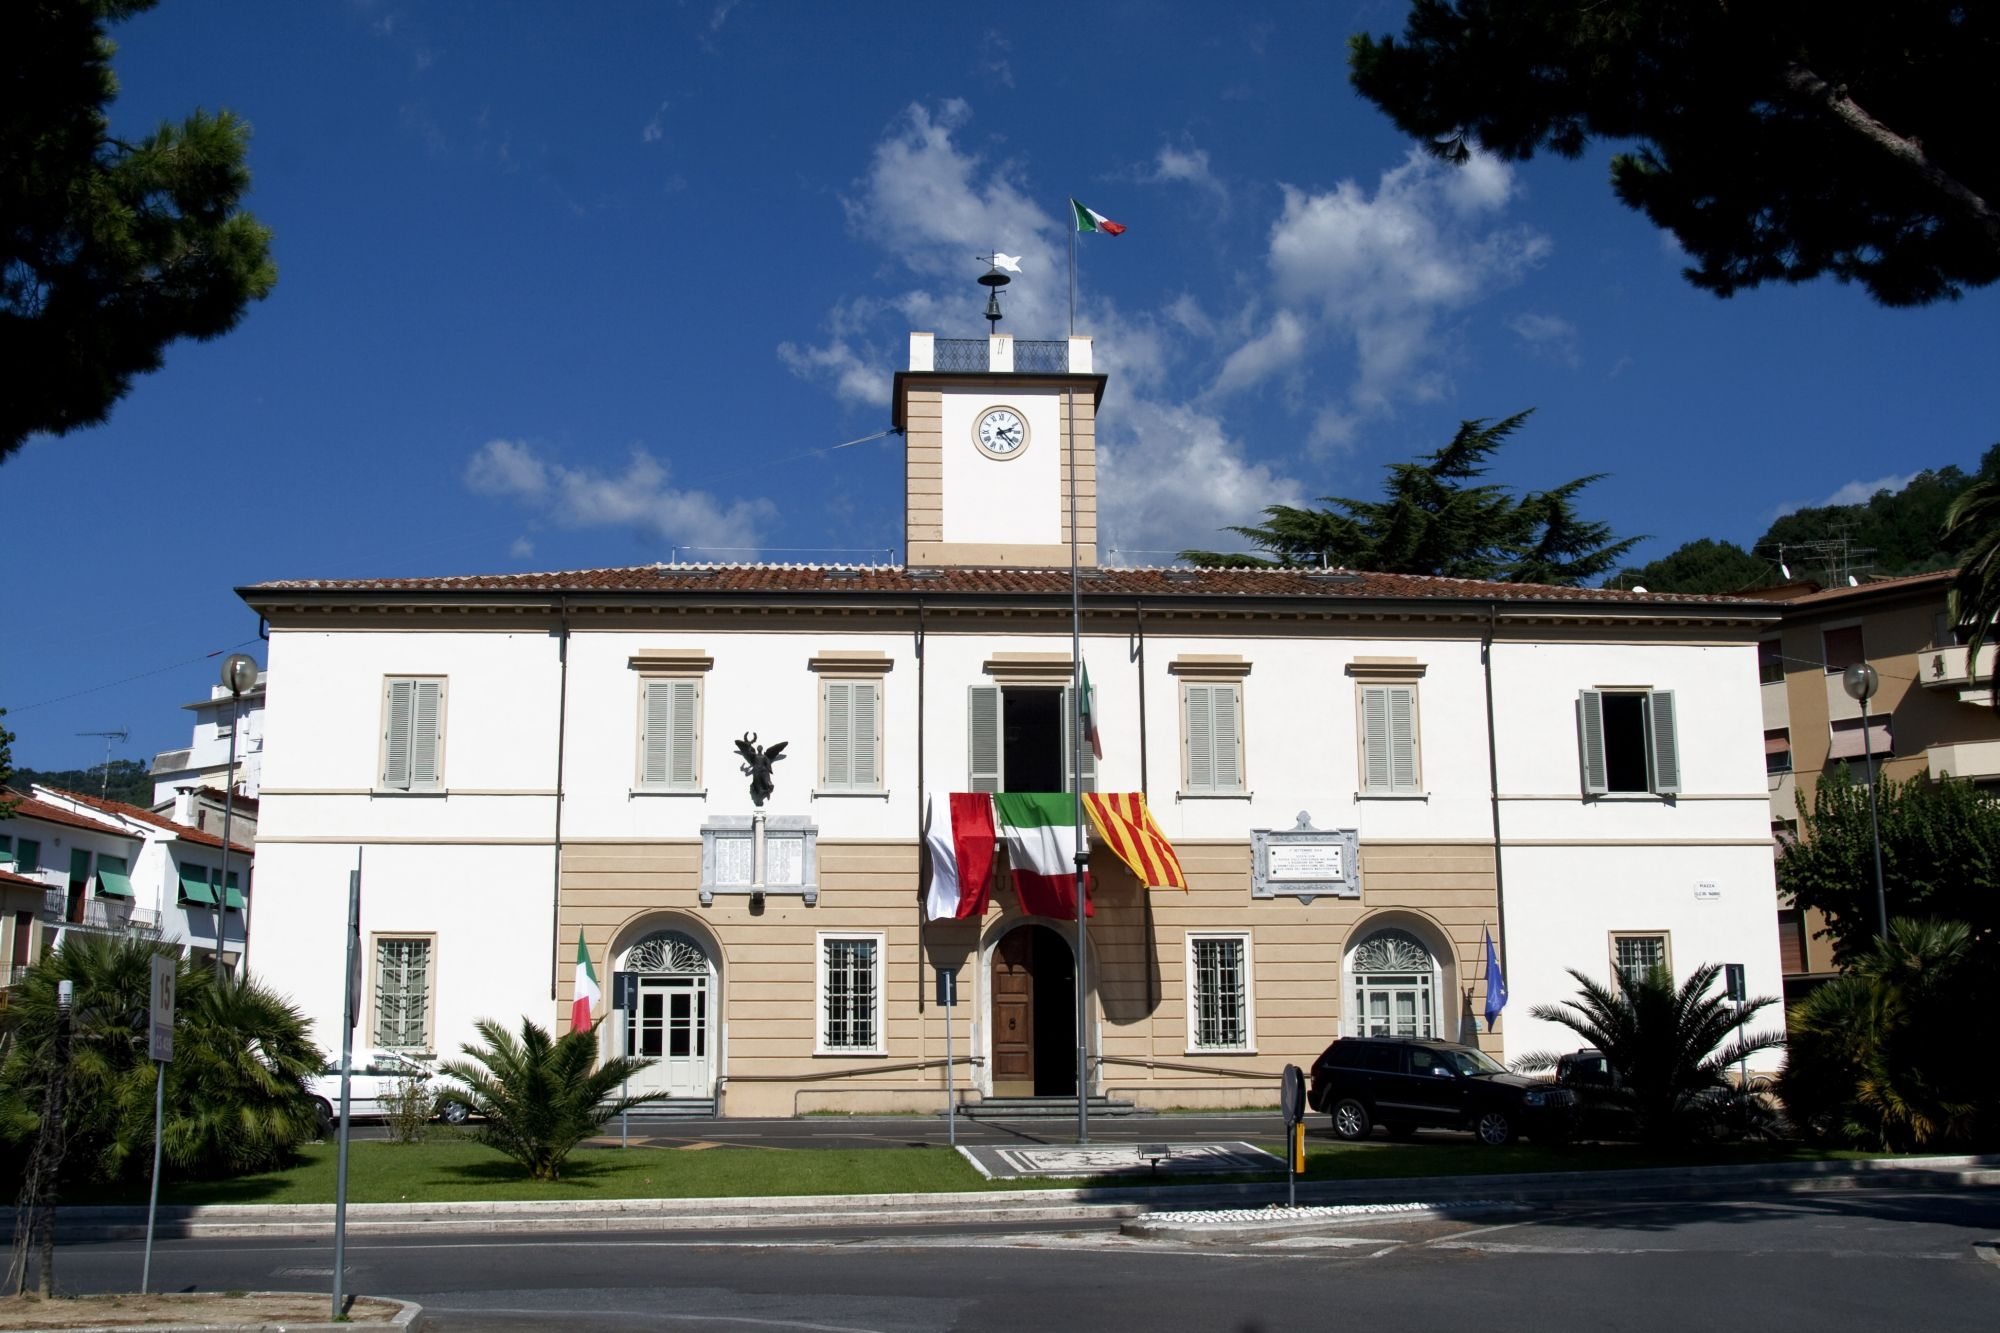 municipio massarosa